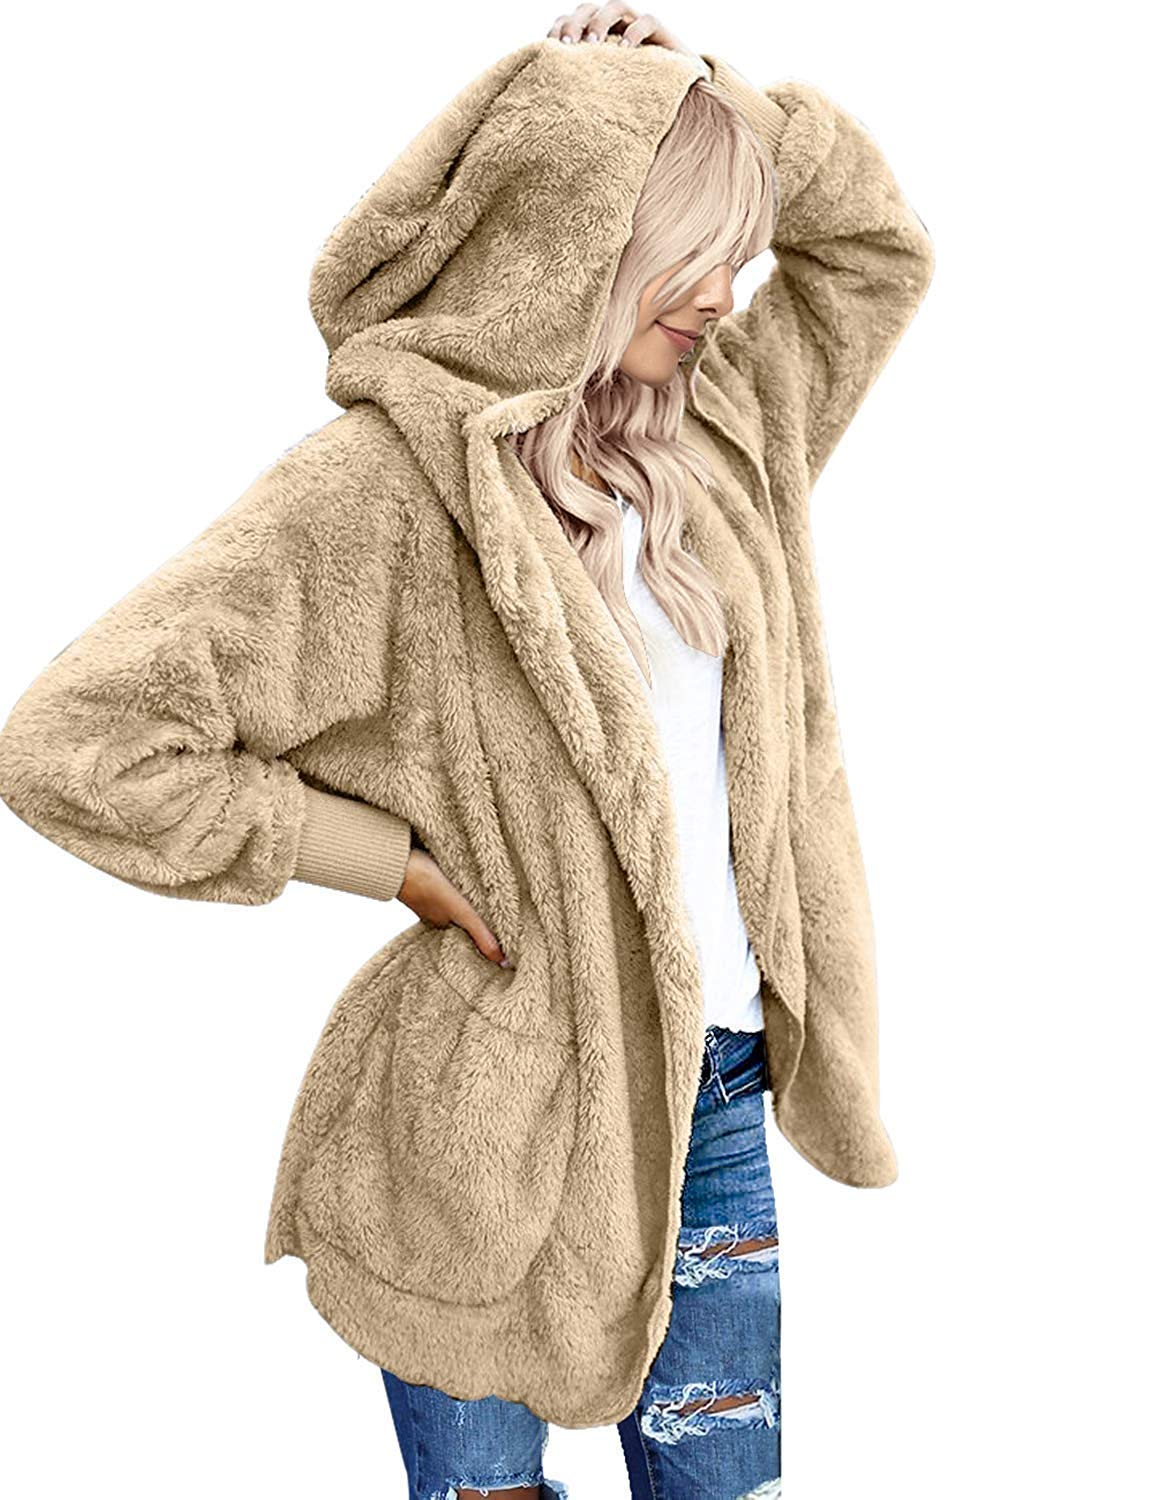 Zeagoo Womens Fuzzy Winter Open Front Cardigan Sherpa Fleece Jacket Hooded Coat Outerwear Khaki by Zeagoo